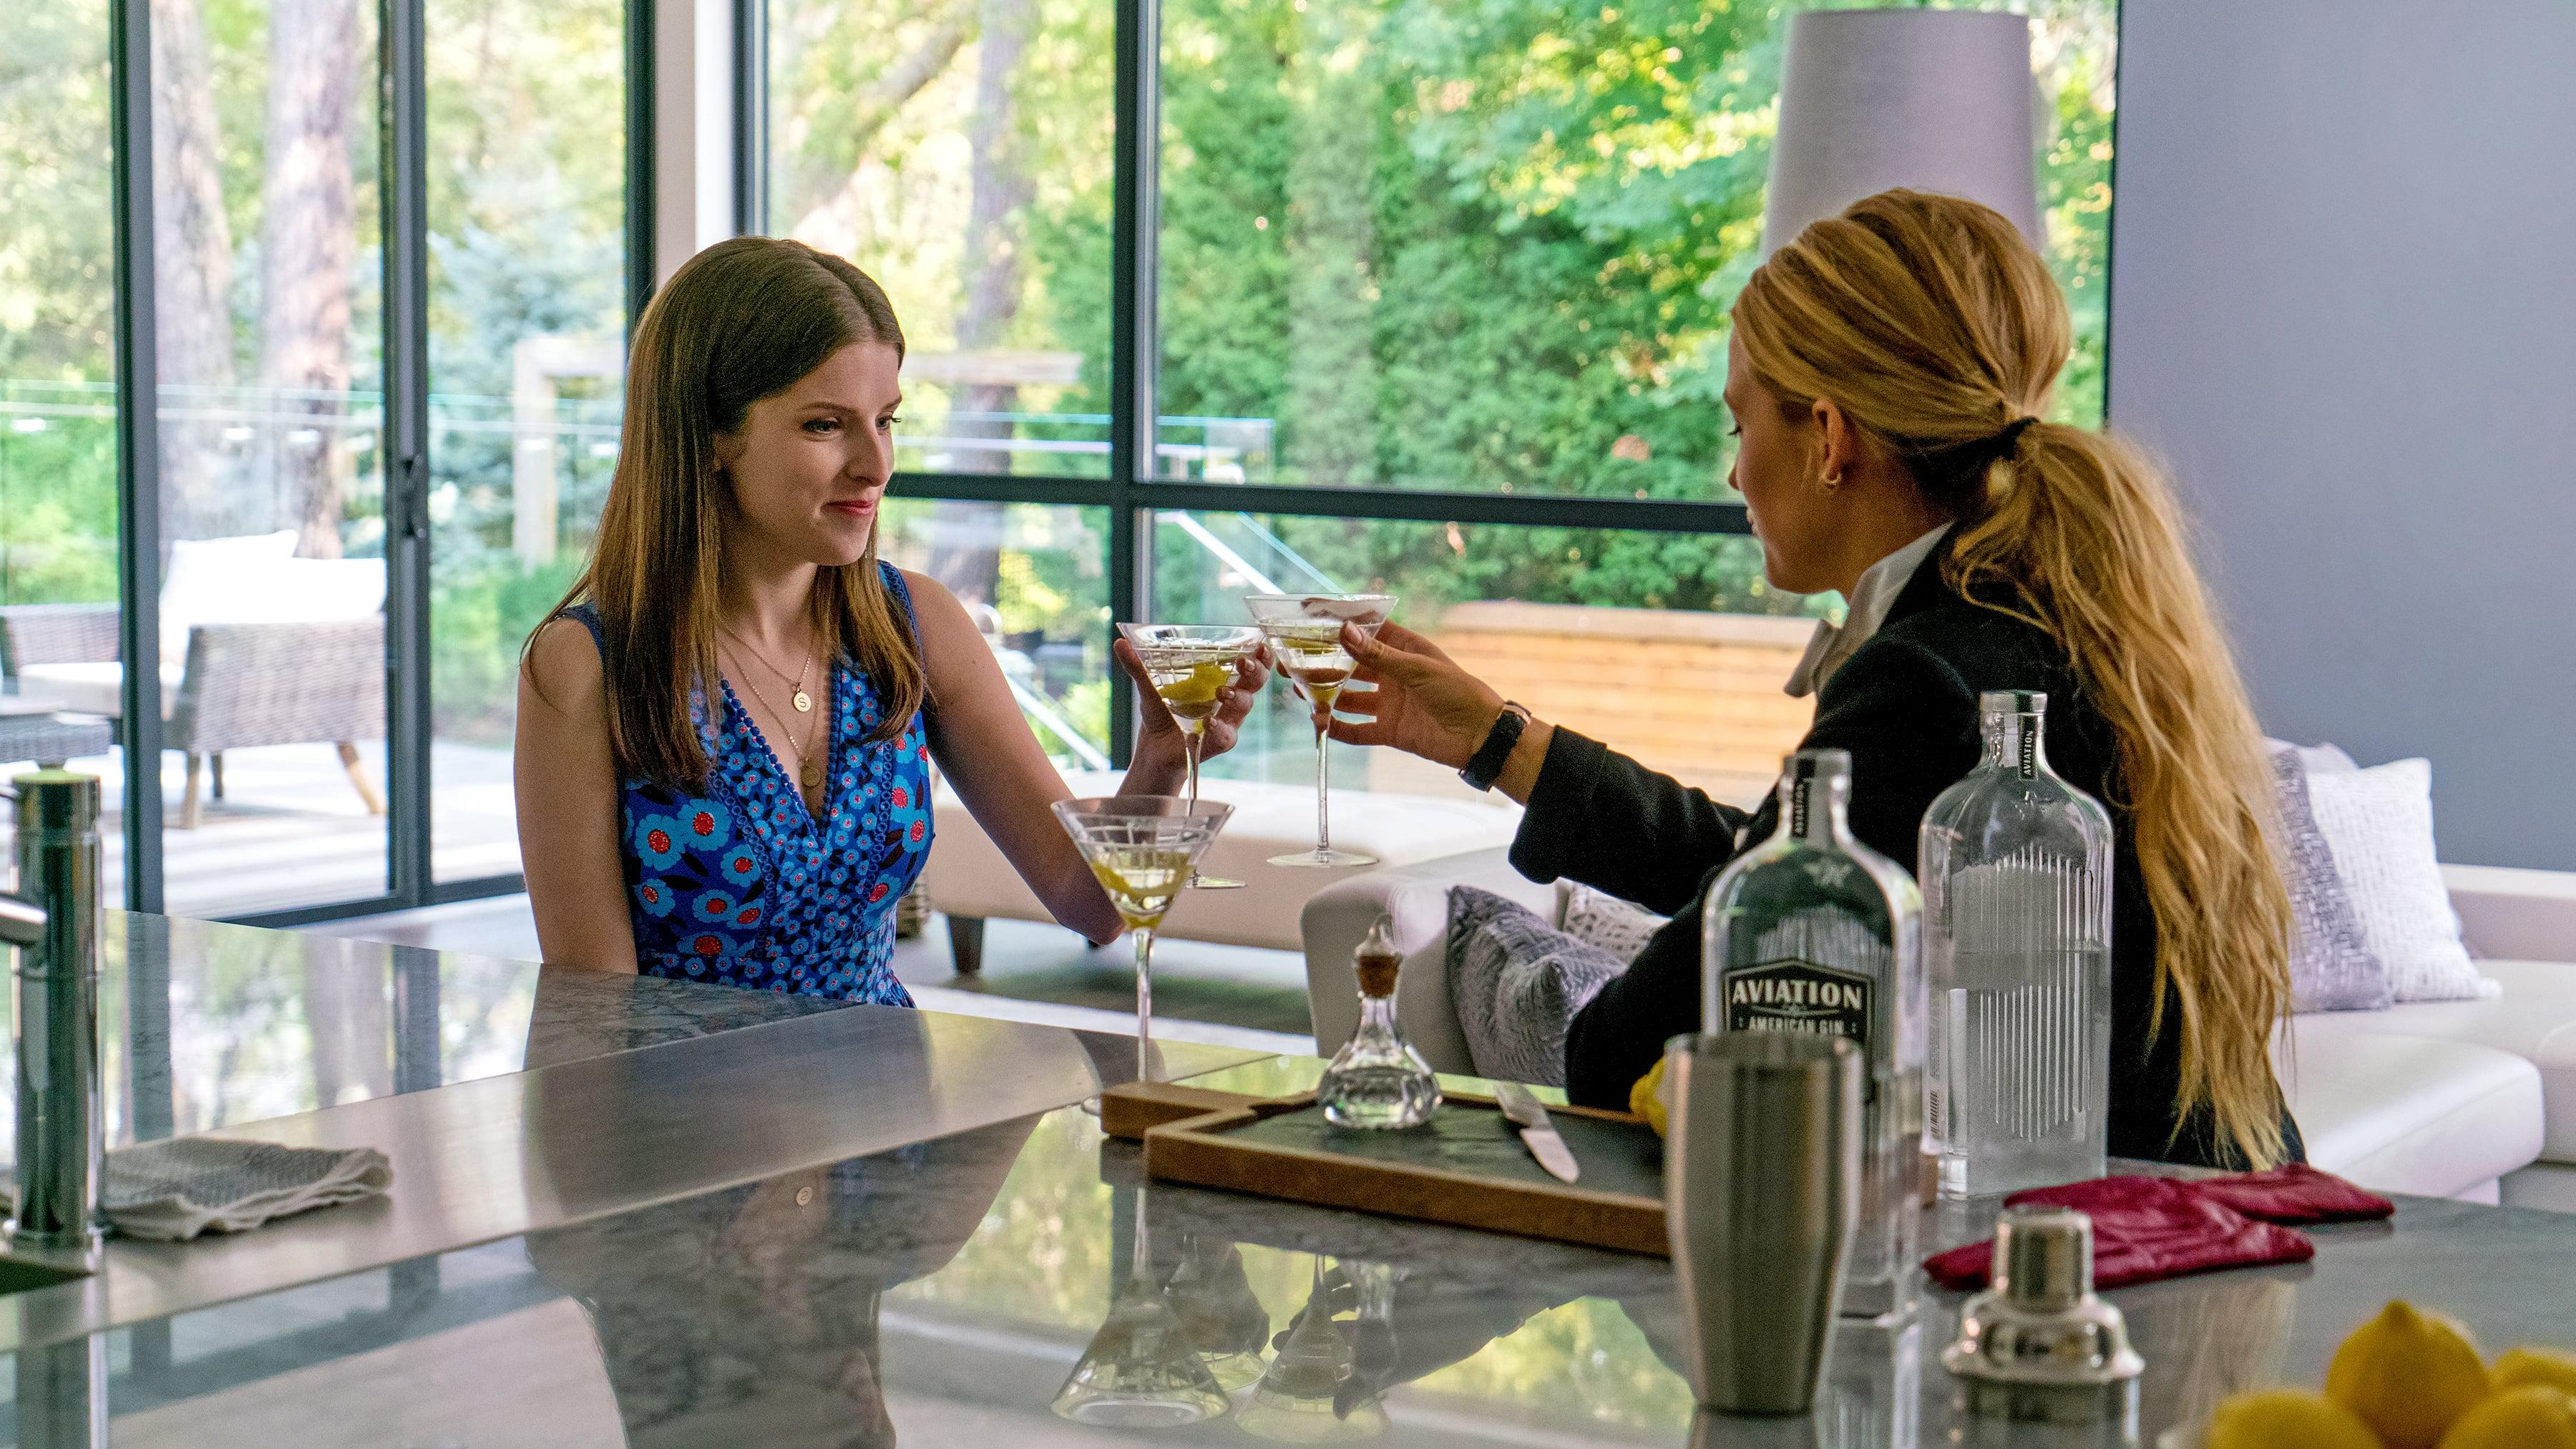 A Simple Favor 2018 123movies